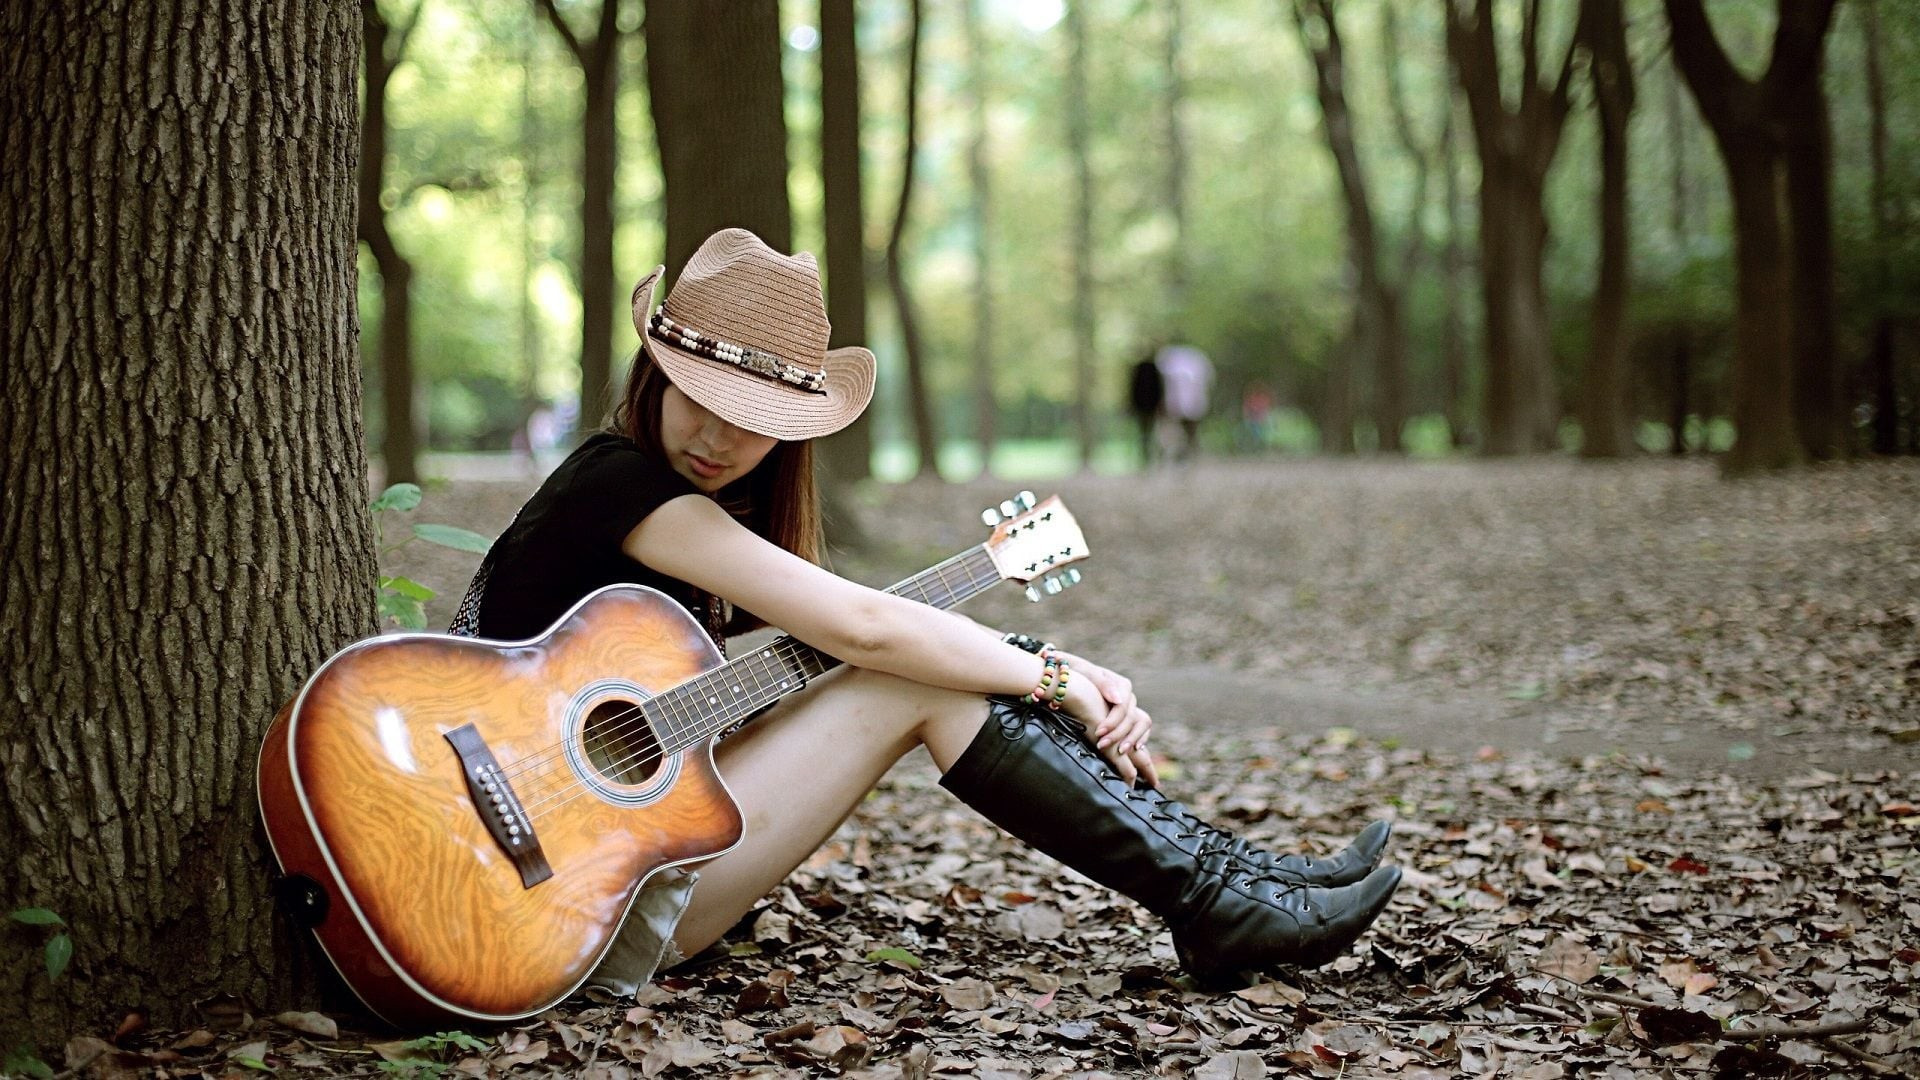 Stylish Cute Wallpapers Hd Guitar Girls Wallpaper 76 Images